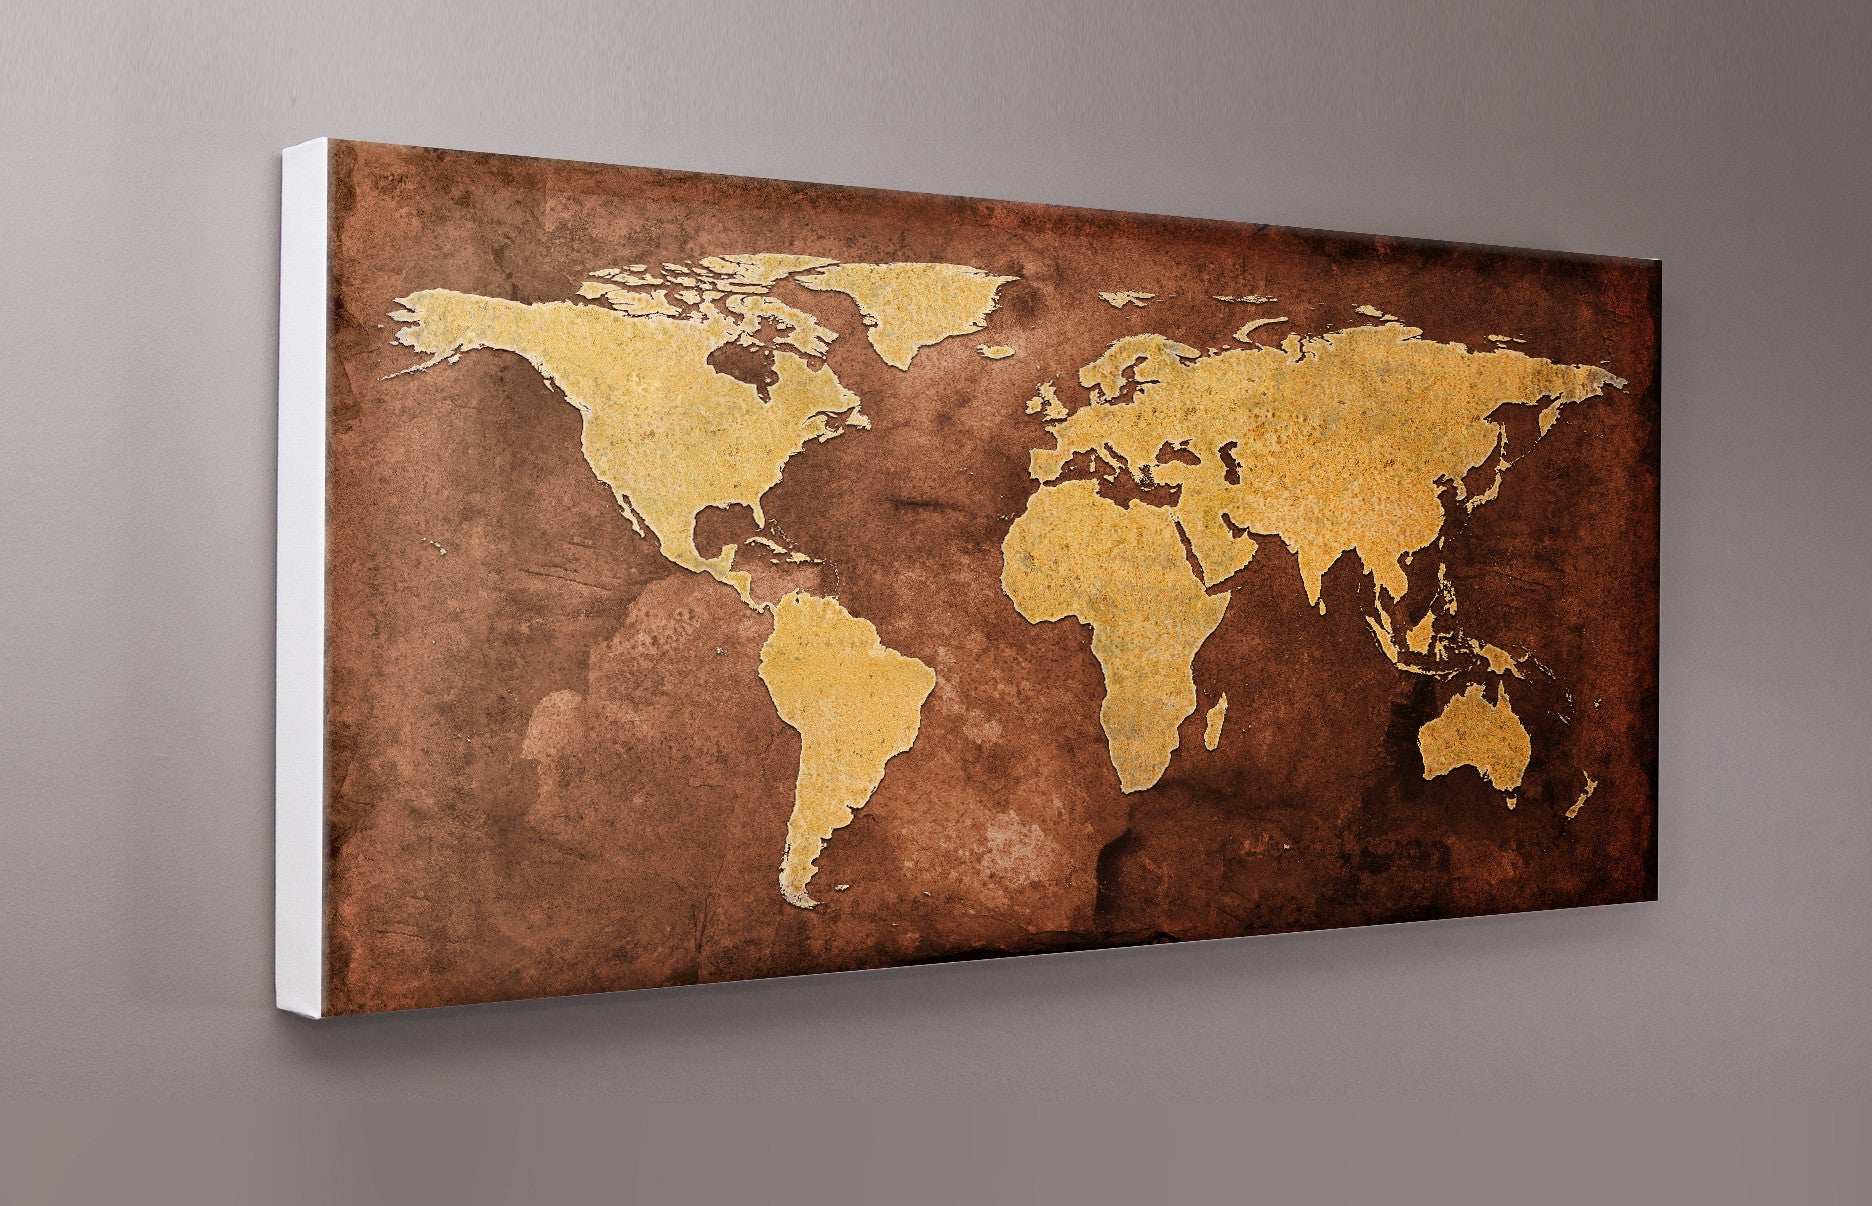 Grunge world map canvas wall print 2 lets get shirty grunge world map canvas wall print 2 gumiabroncs Gallery